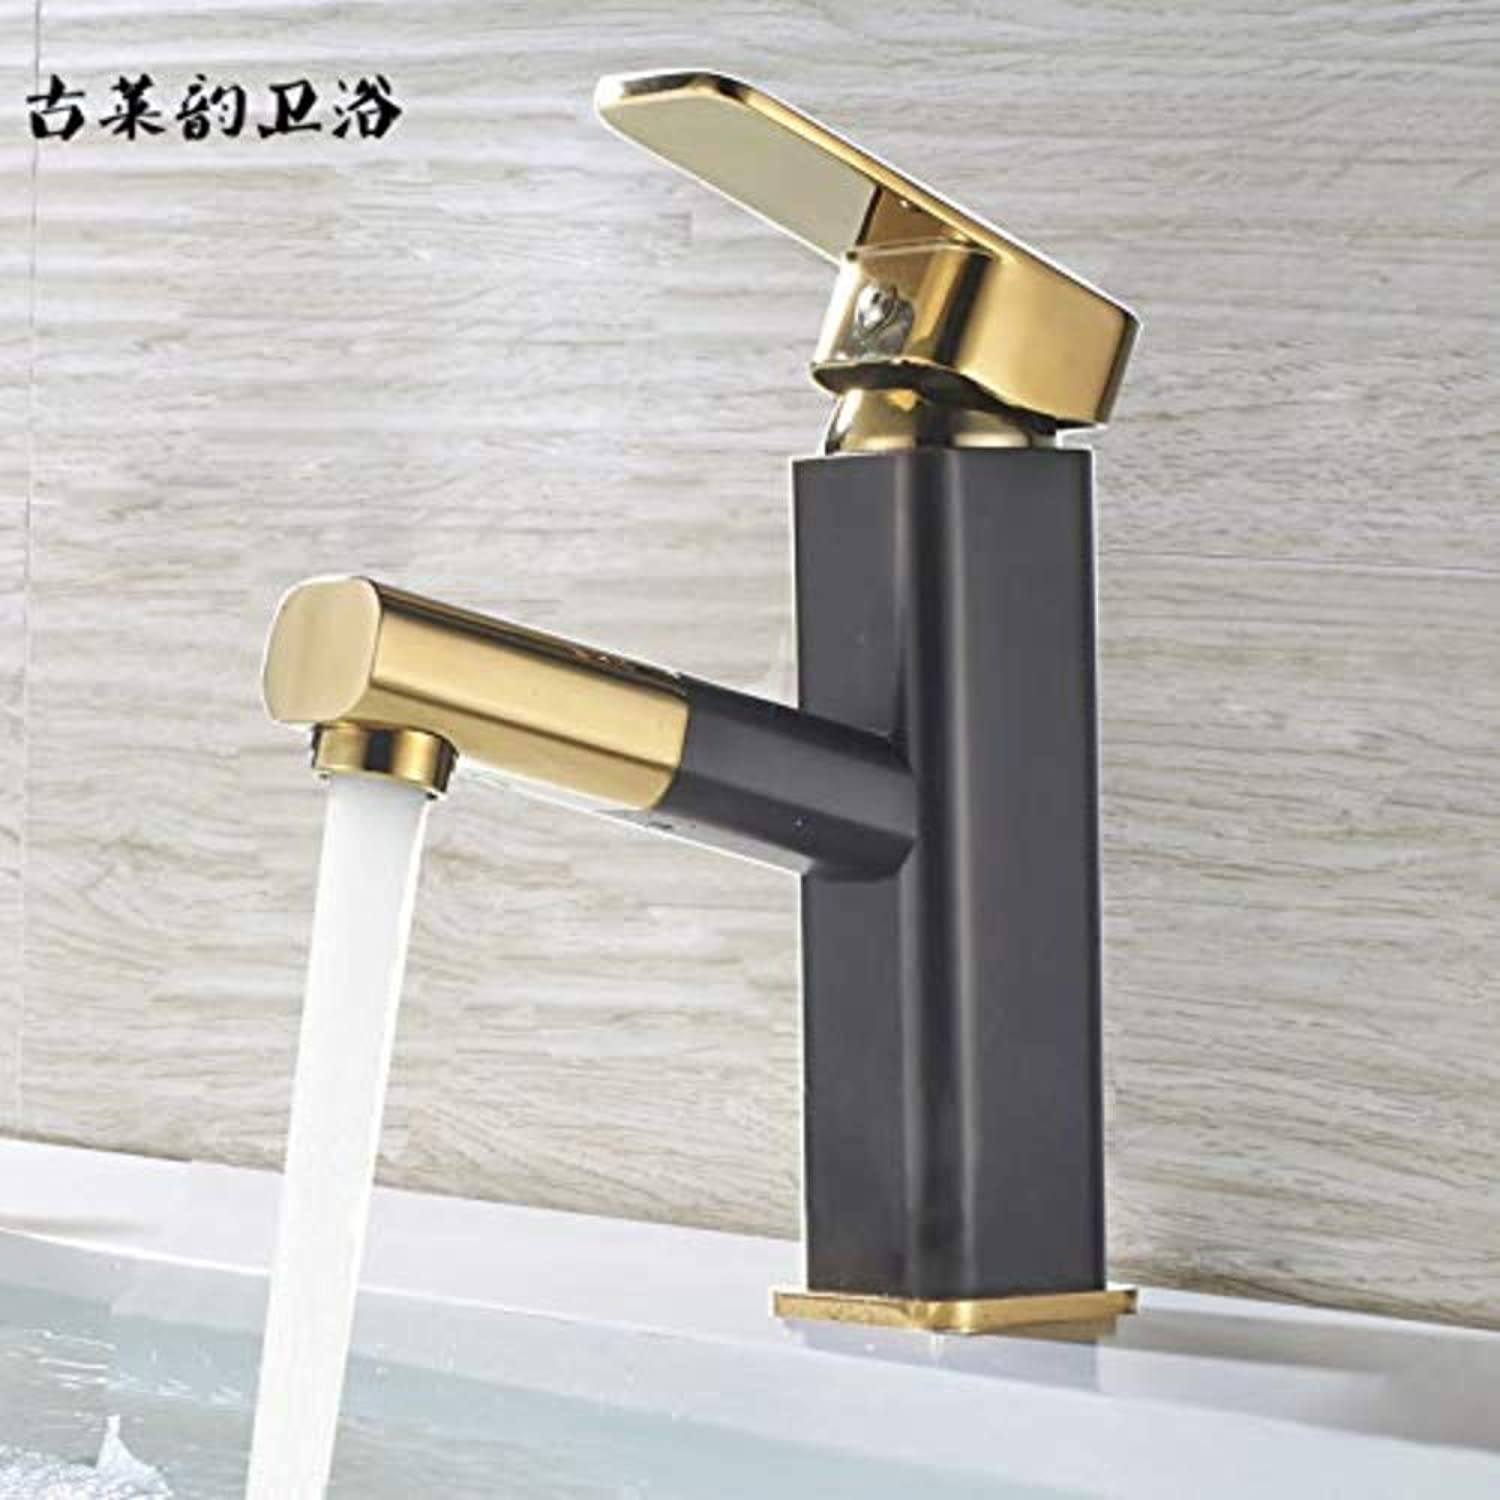 Water Tapfaucet Taps Pull-Type Retractable Basin Washbasin Art Basin Faucet Hot and Cold Copper Stretchable Black Retro gold, New Square [ Universal Pull]